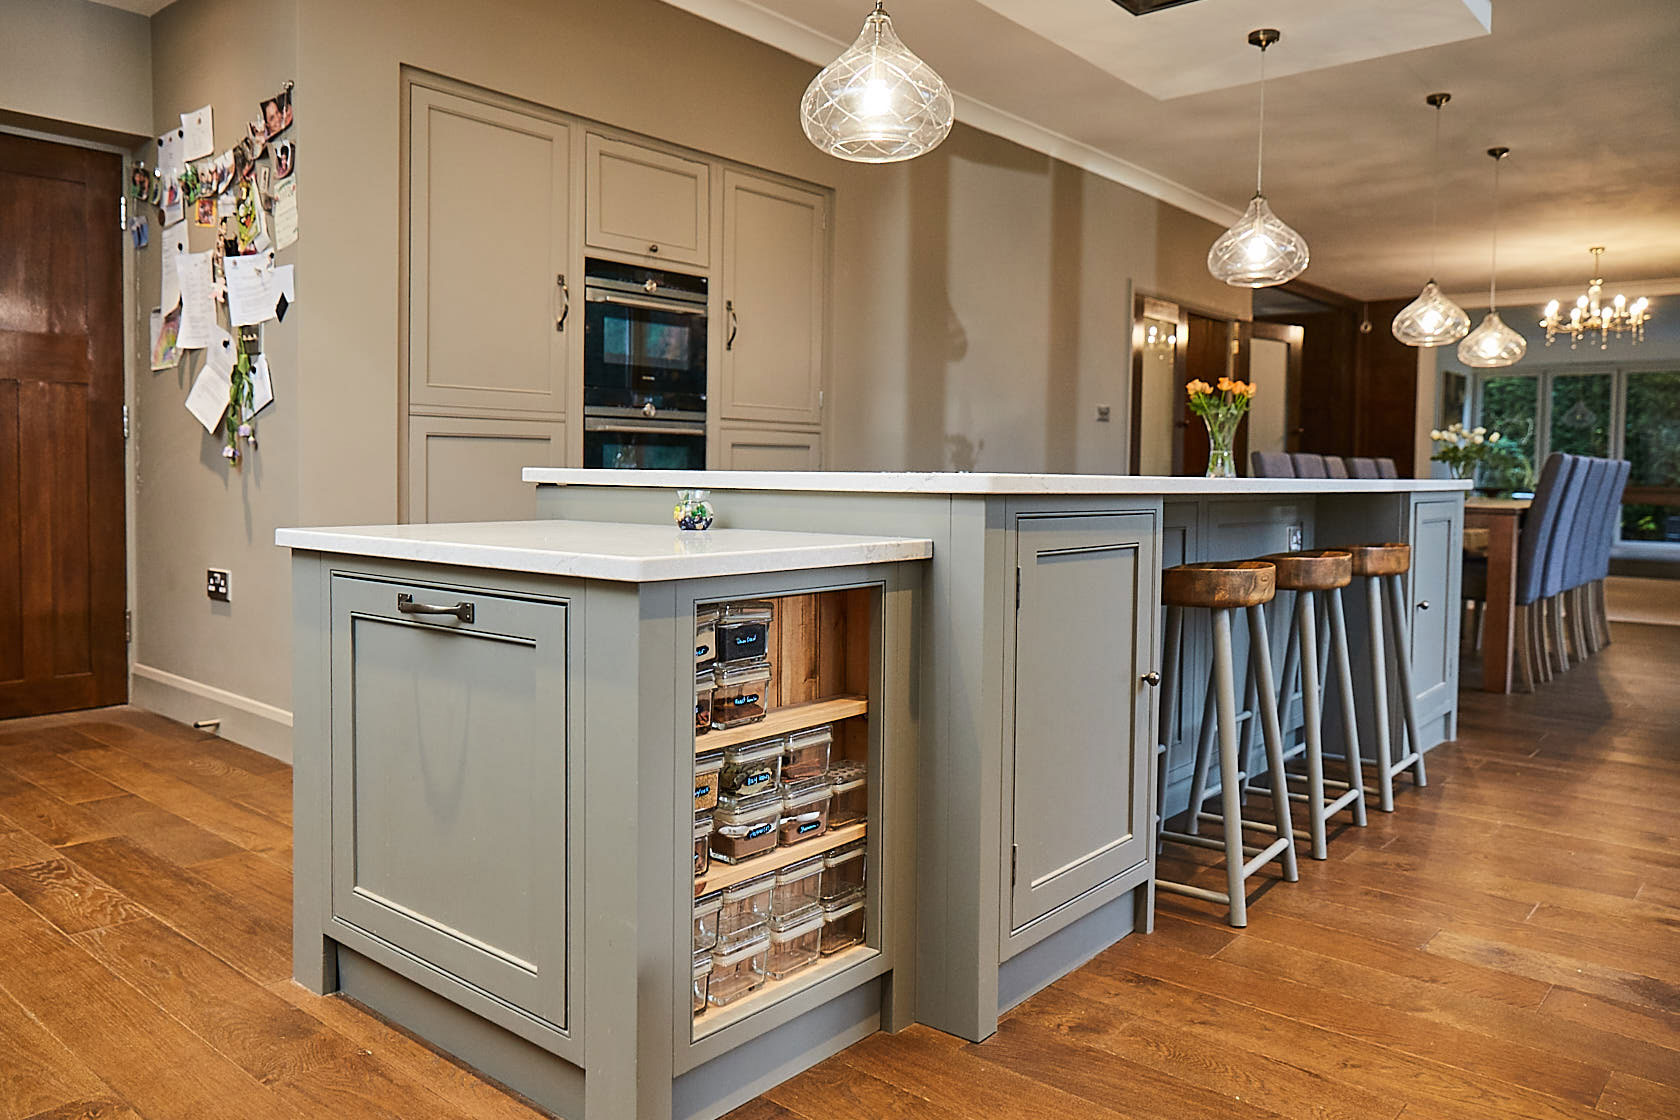 Bespoke kitchen unit with open spice rack on the side